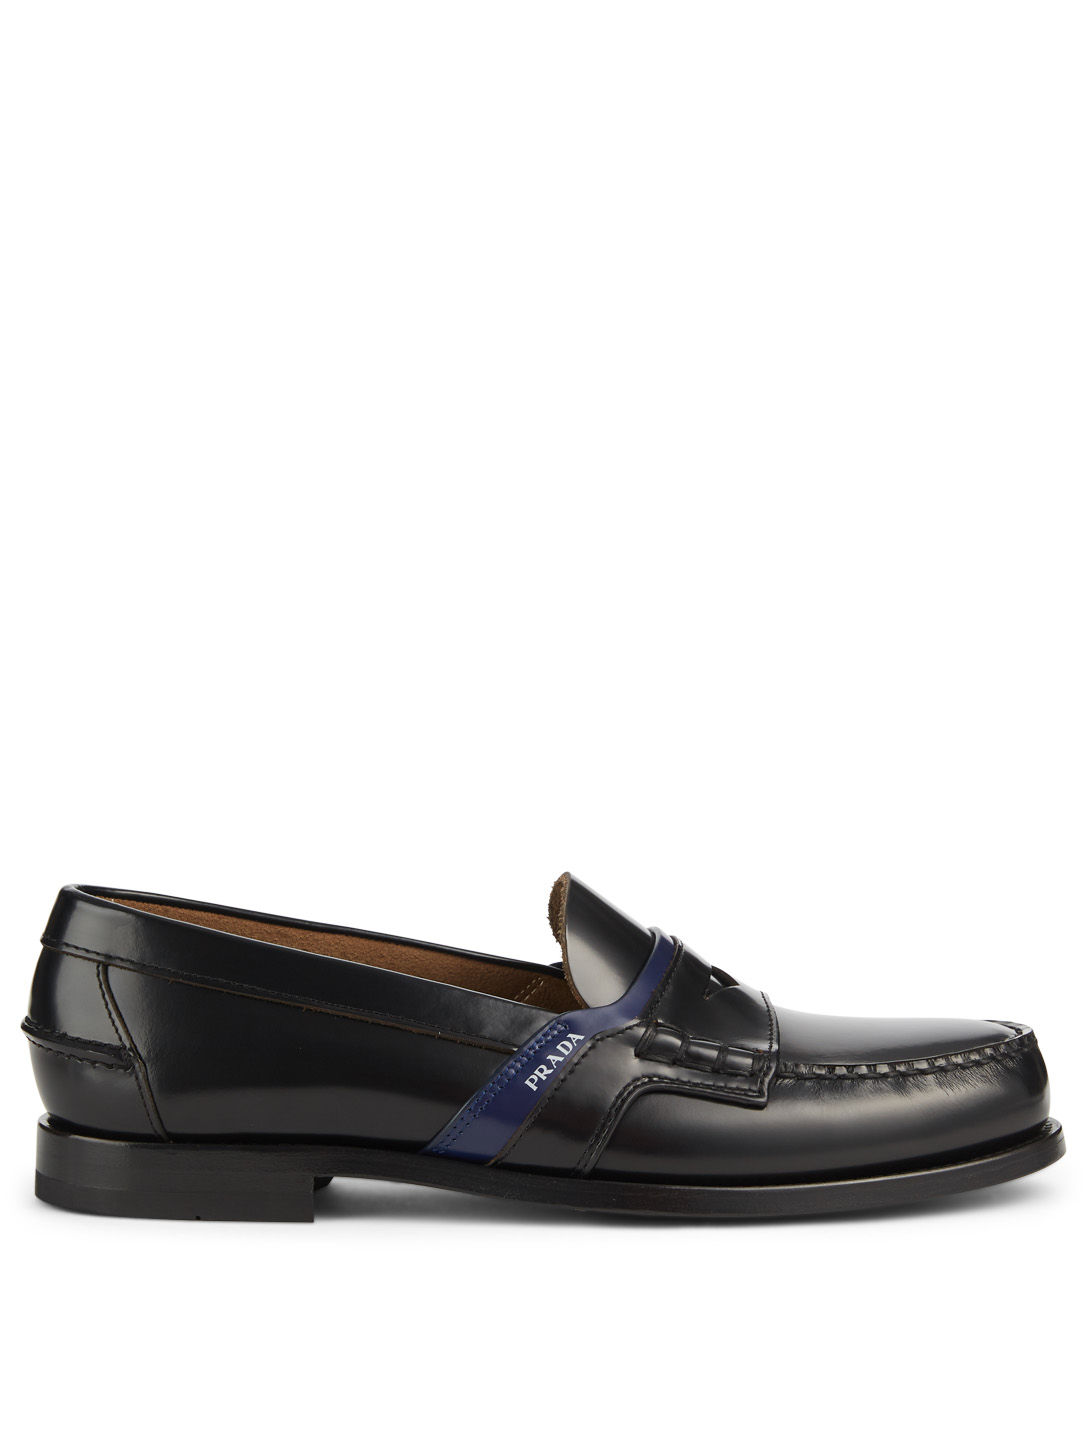 PRADA Leather Penny Loafers Designers Black